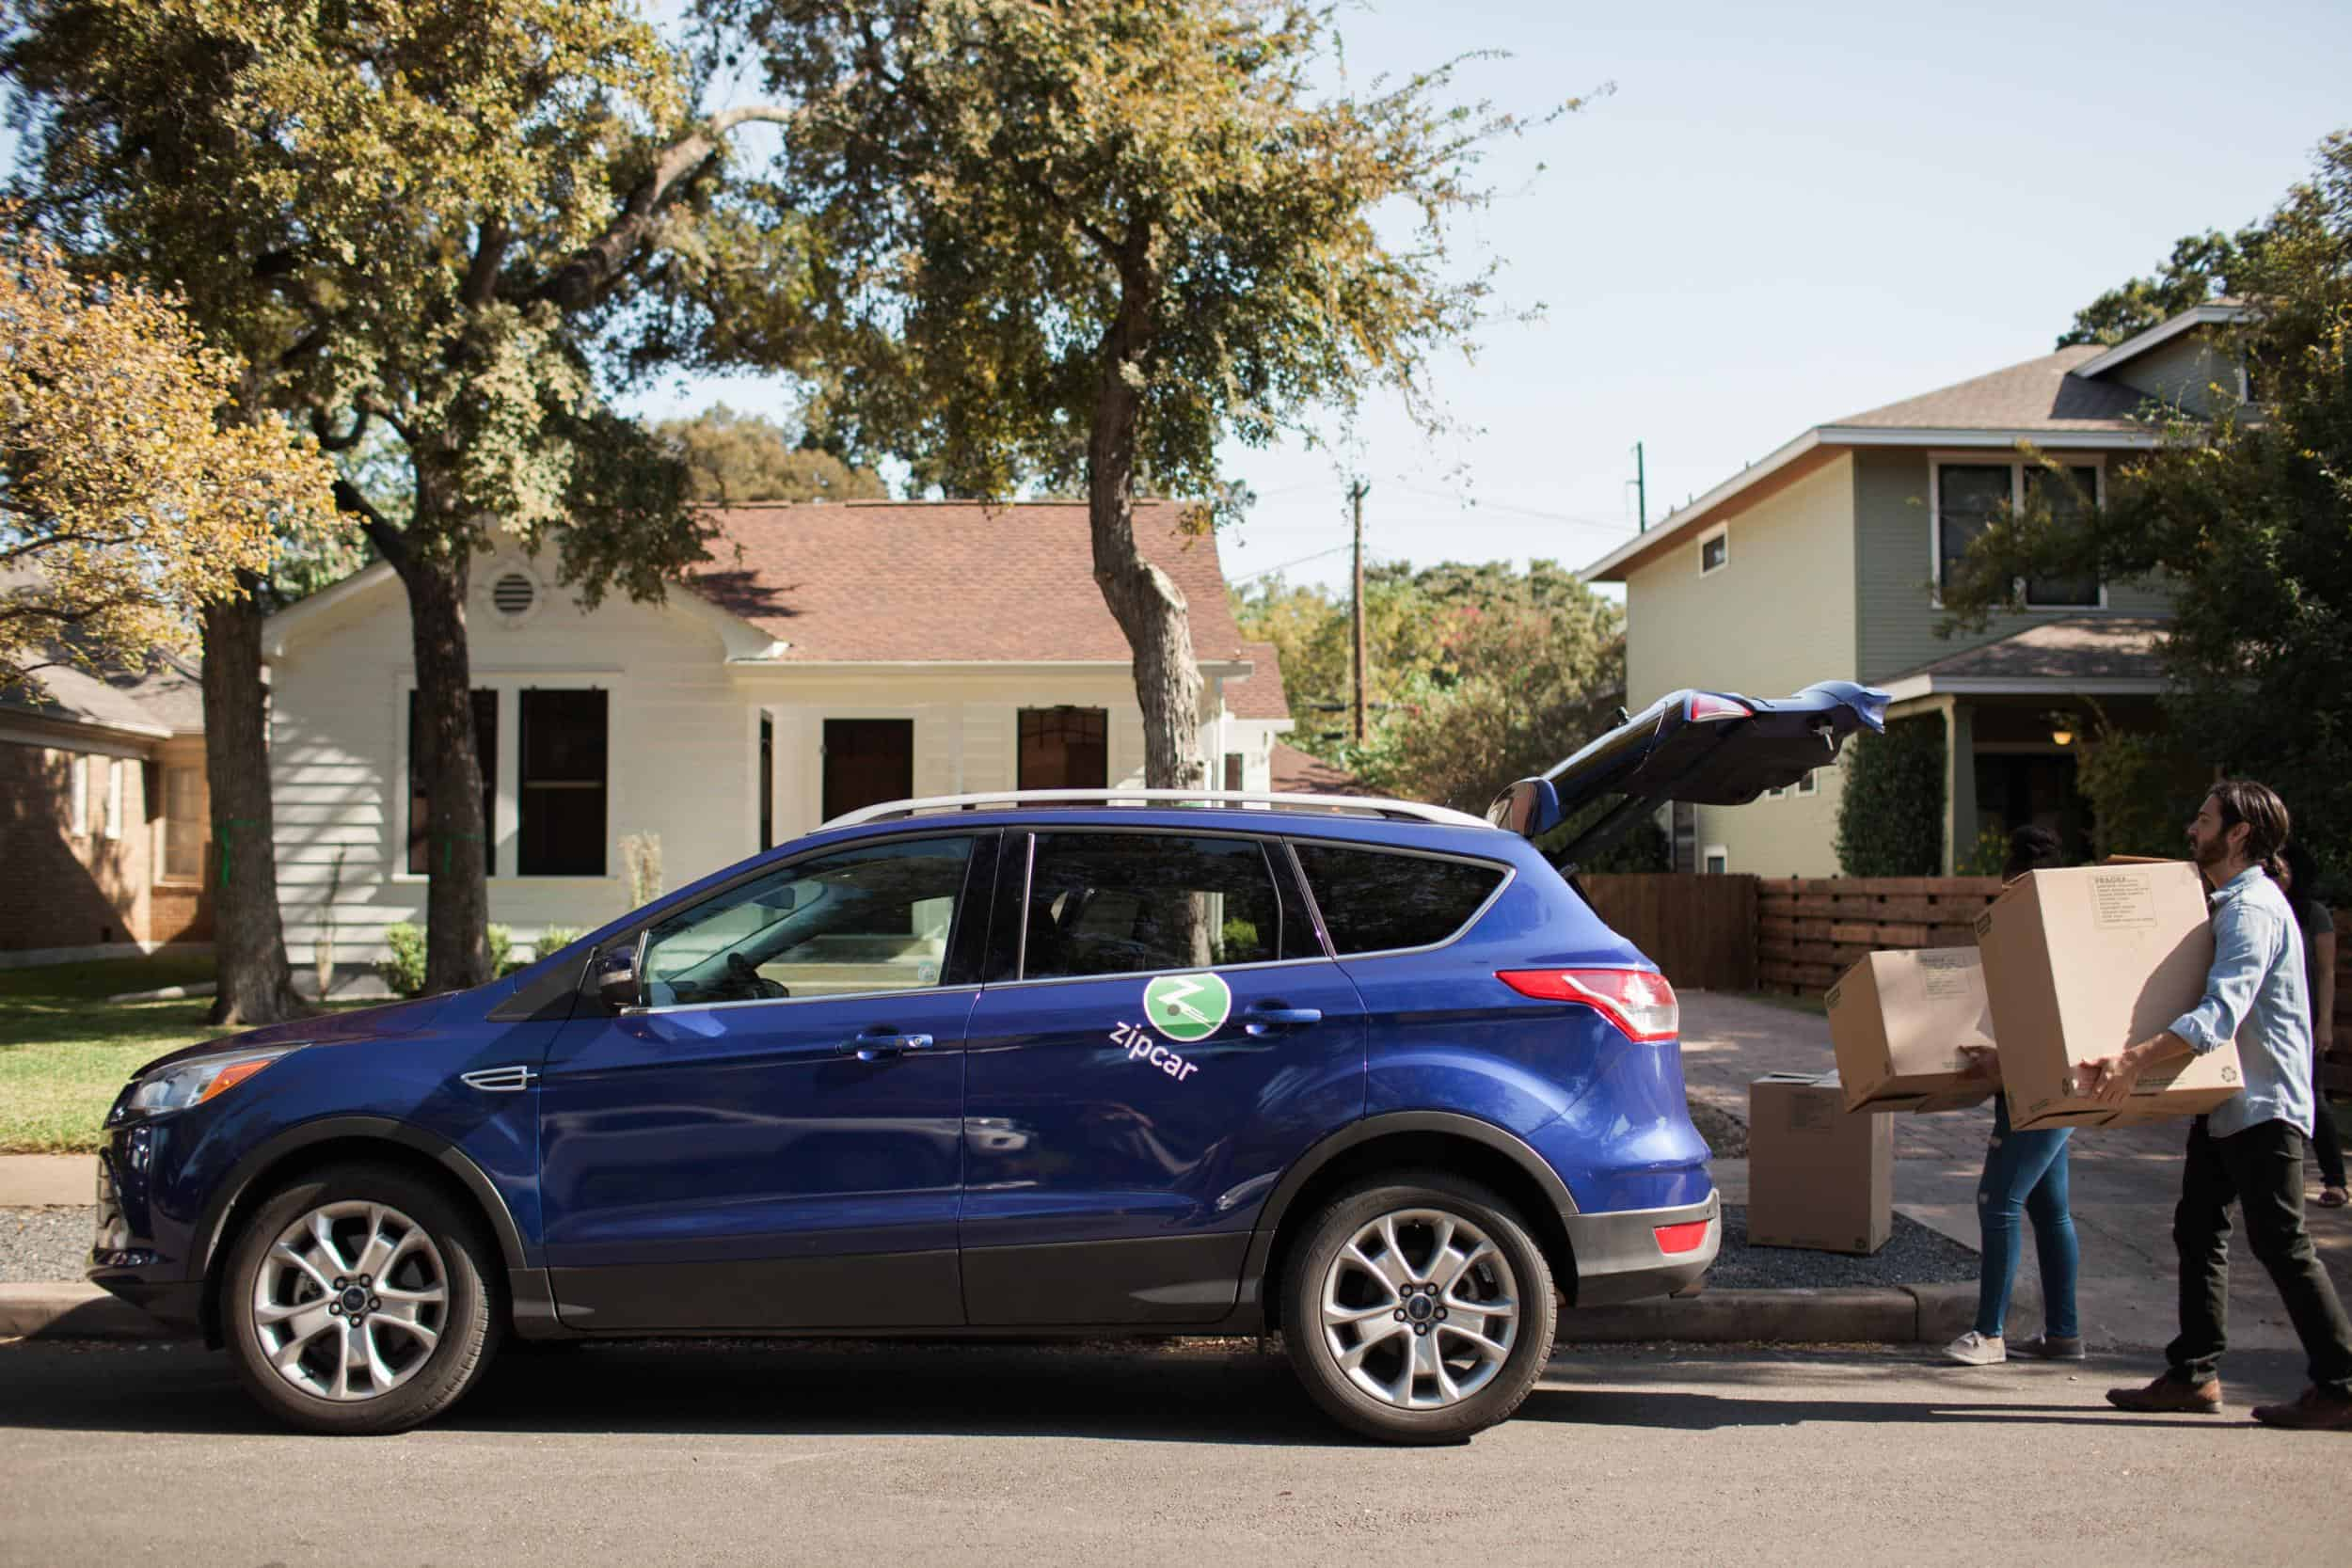 How to live without a car - Blue Zipcar and people carrying boxes